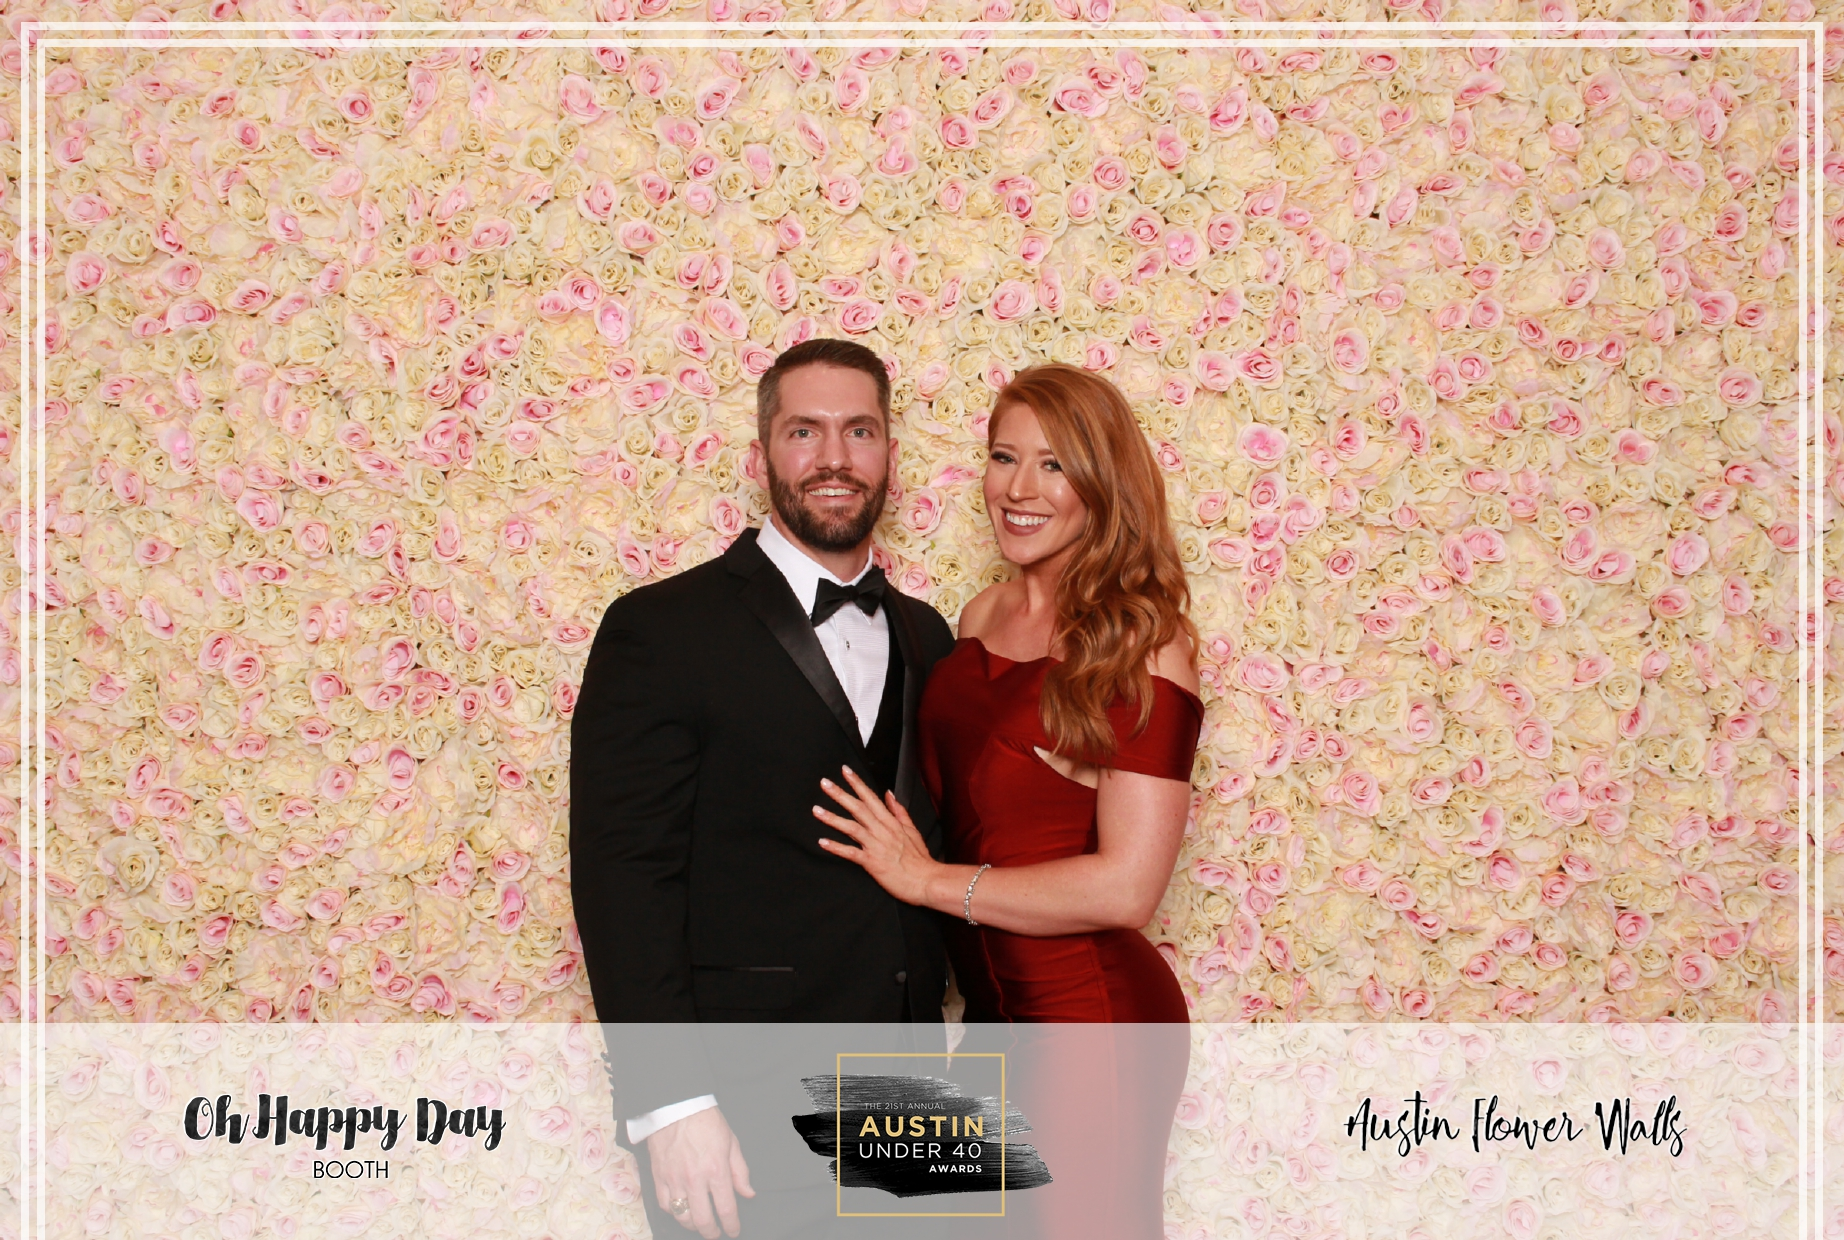 Oh Happy Day Booth - Austin Under 40-128.jpg